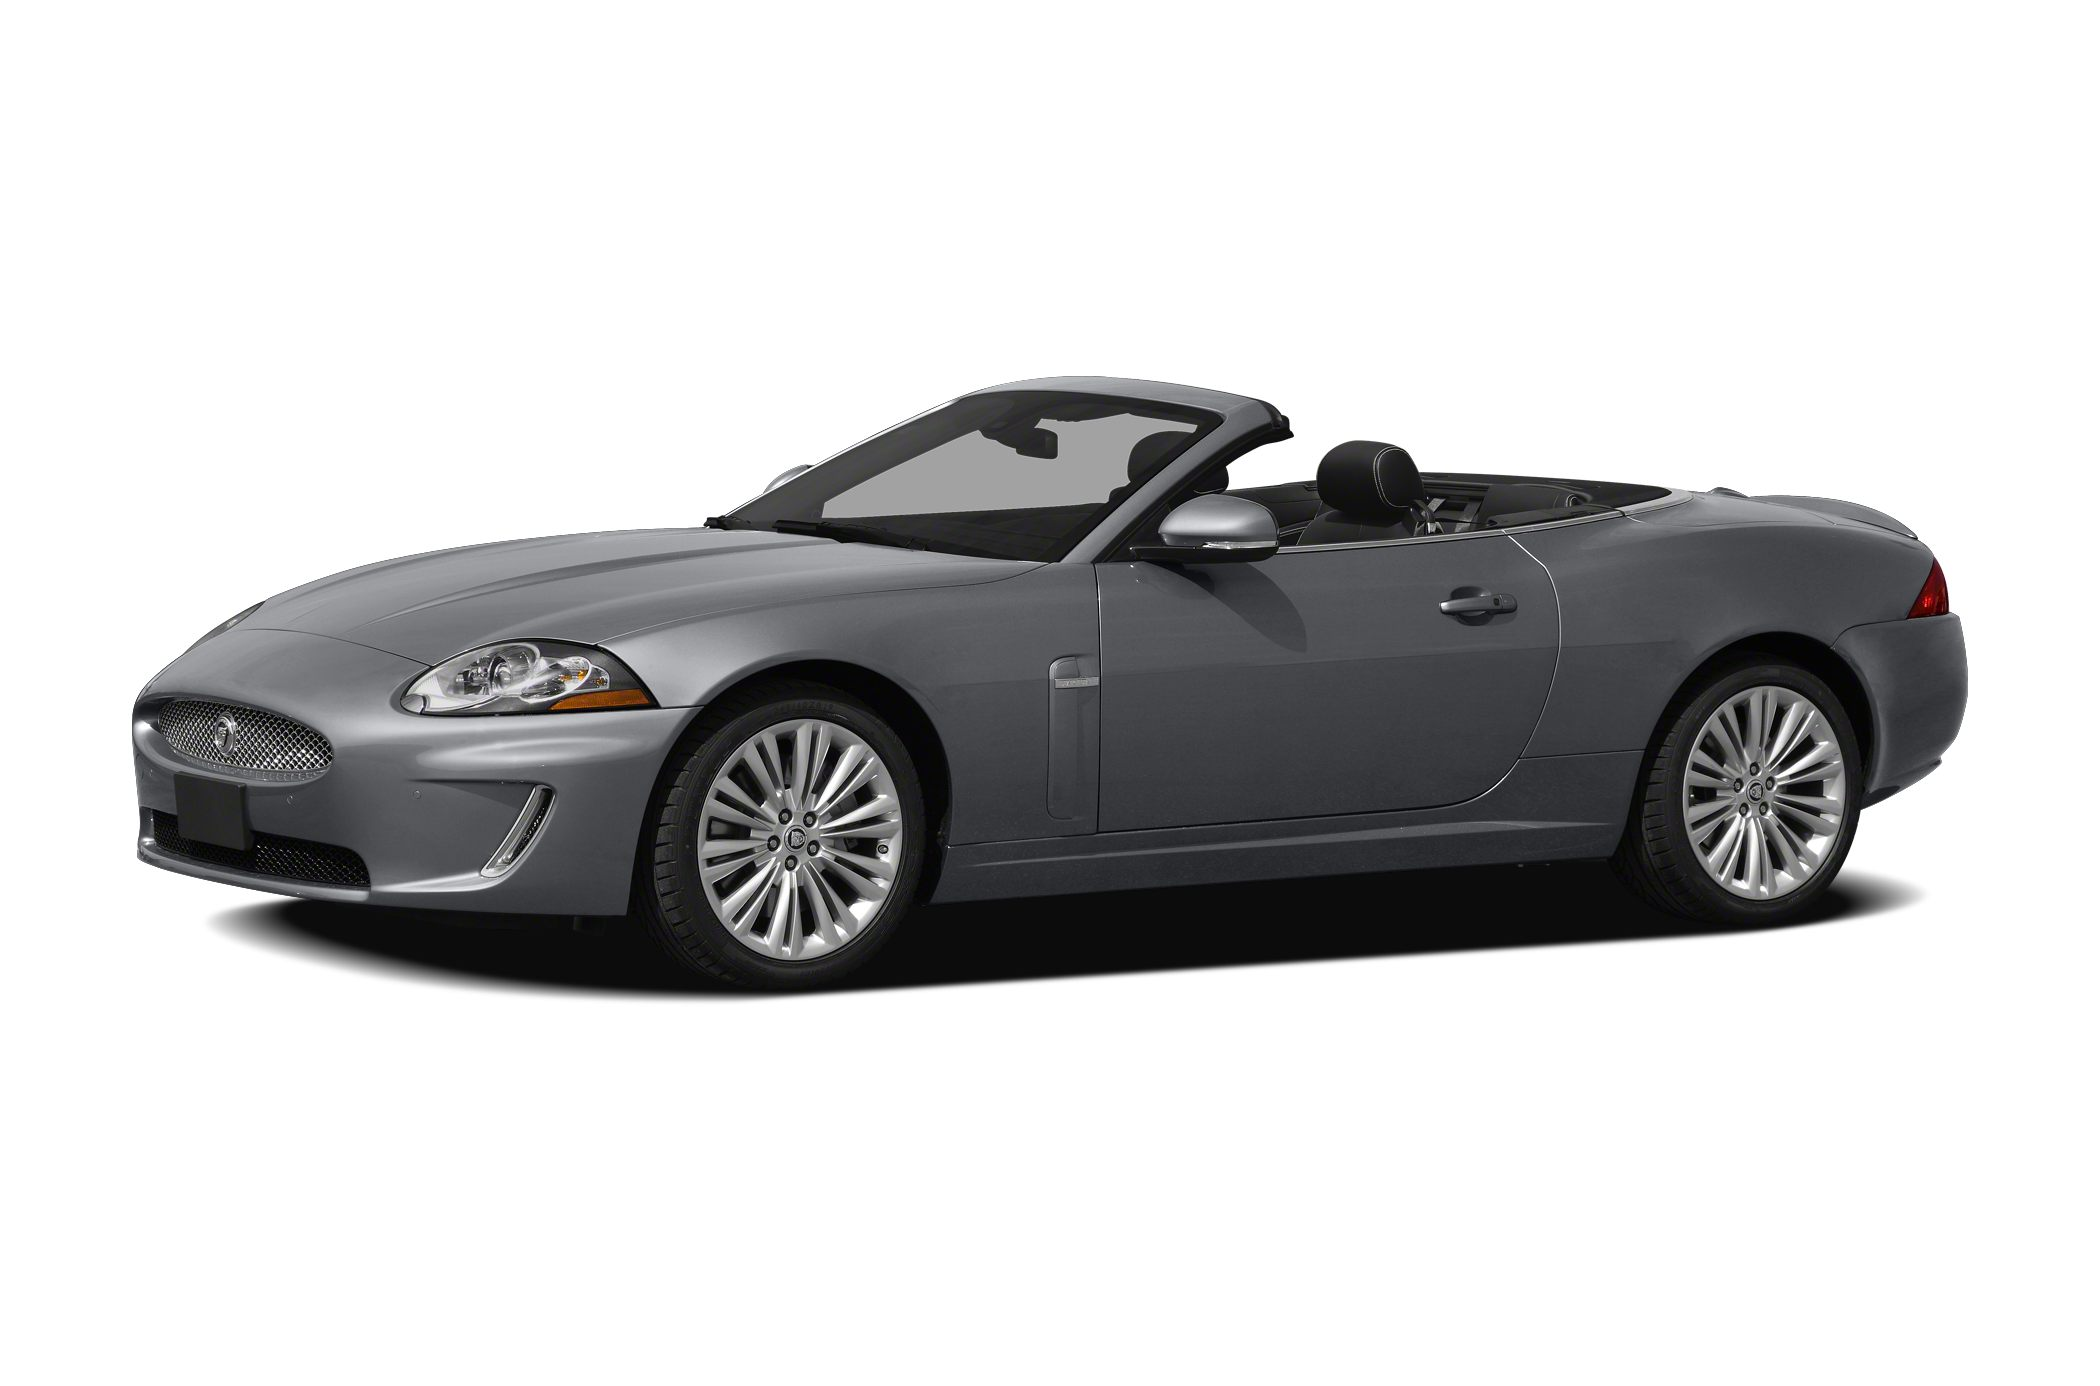 2011 Jaguar XK